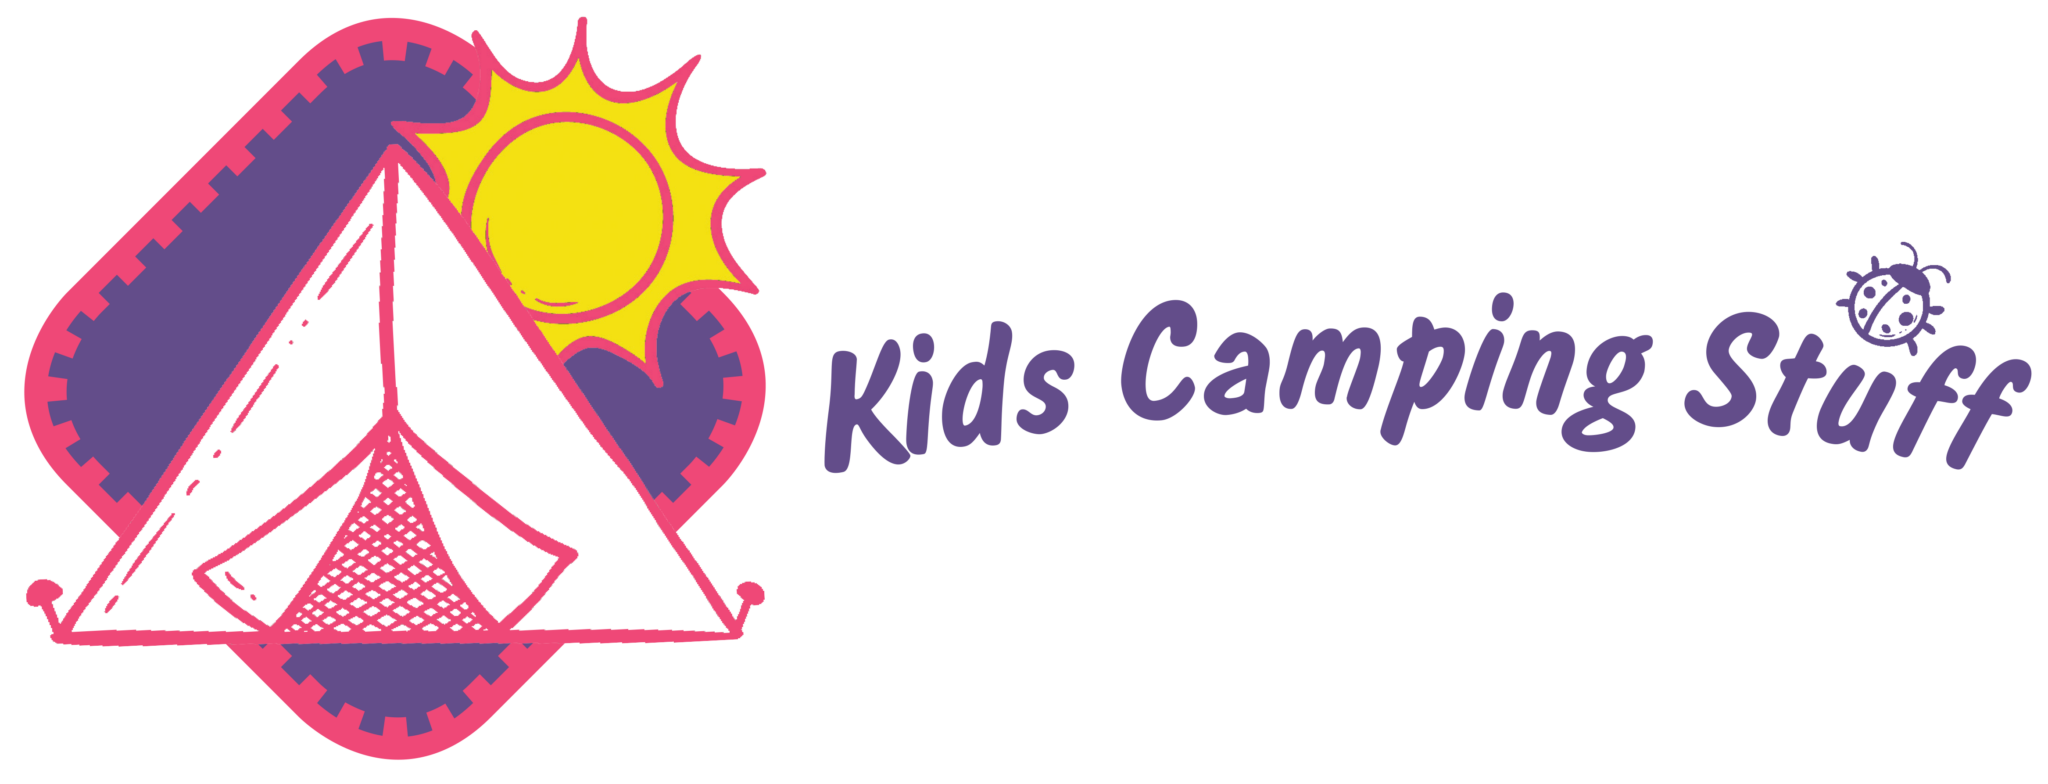 Kids Camping Stuff Banner Logo - Graphic of a badge with a tent and a sun